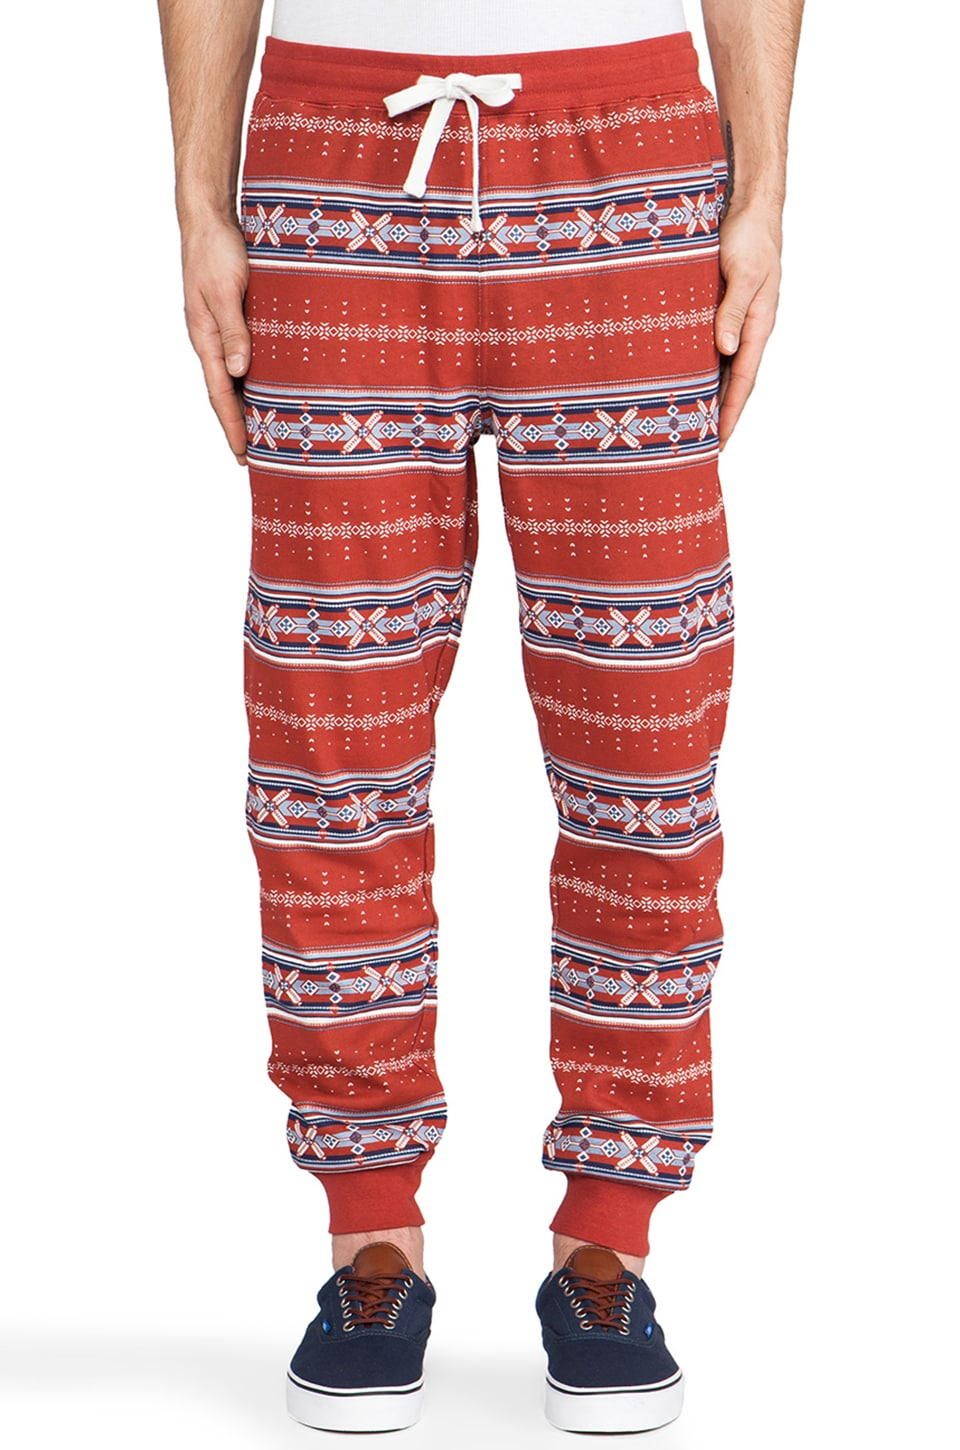 Staple Pryce Fleece Pant in Red